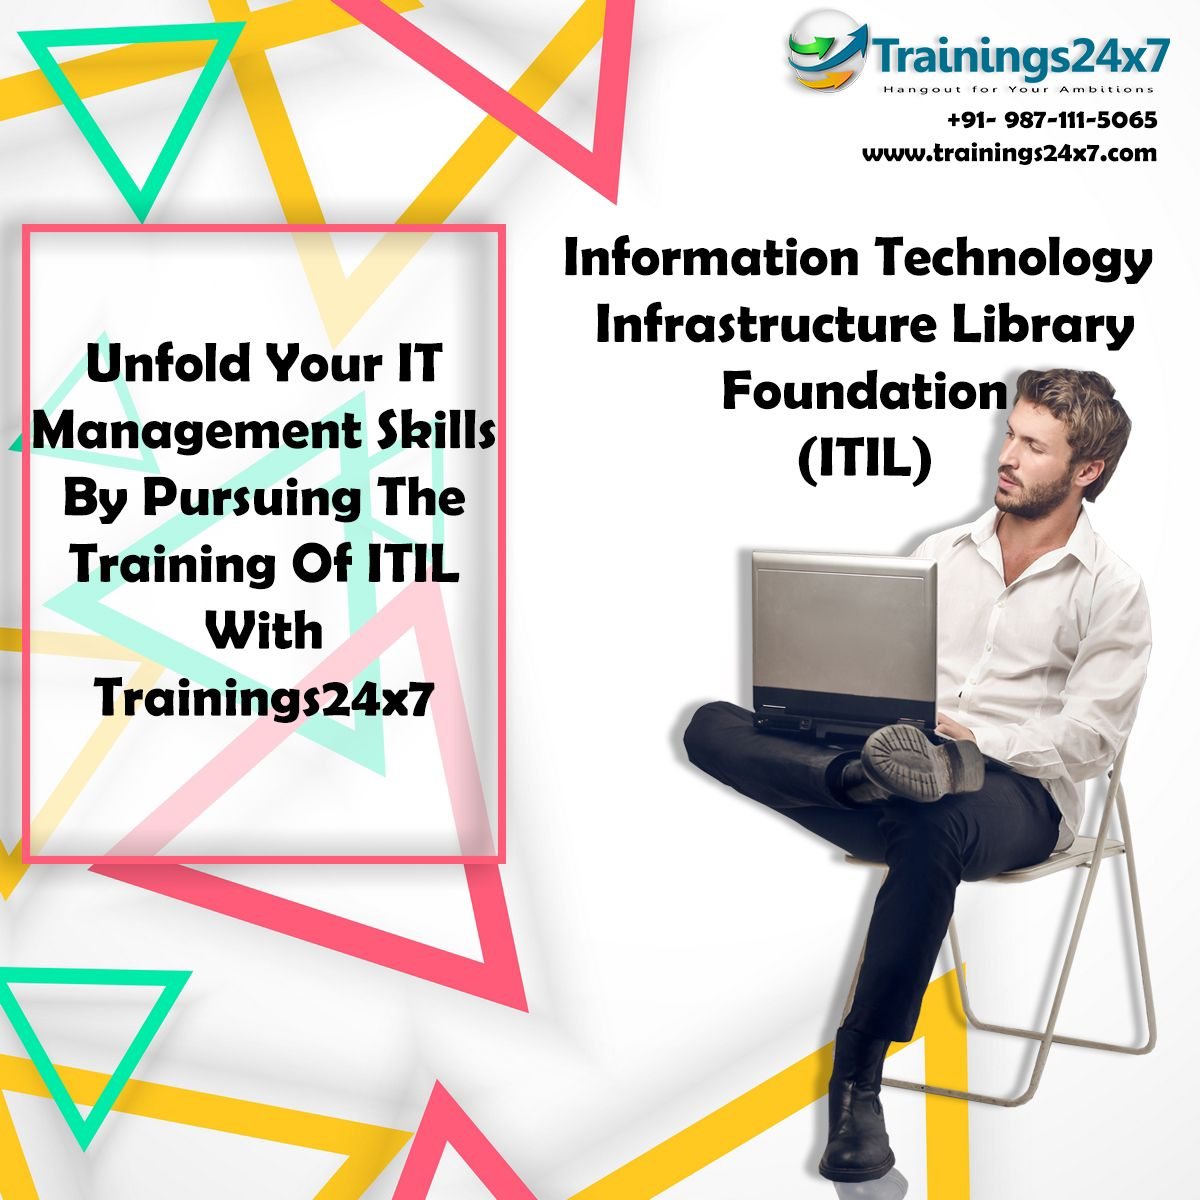 Benefit Of Having Itil Foundation Certification The Holder Of The